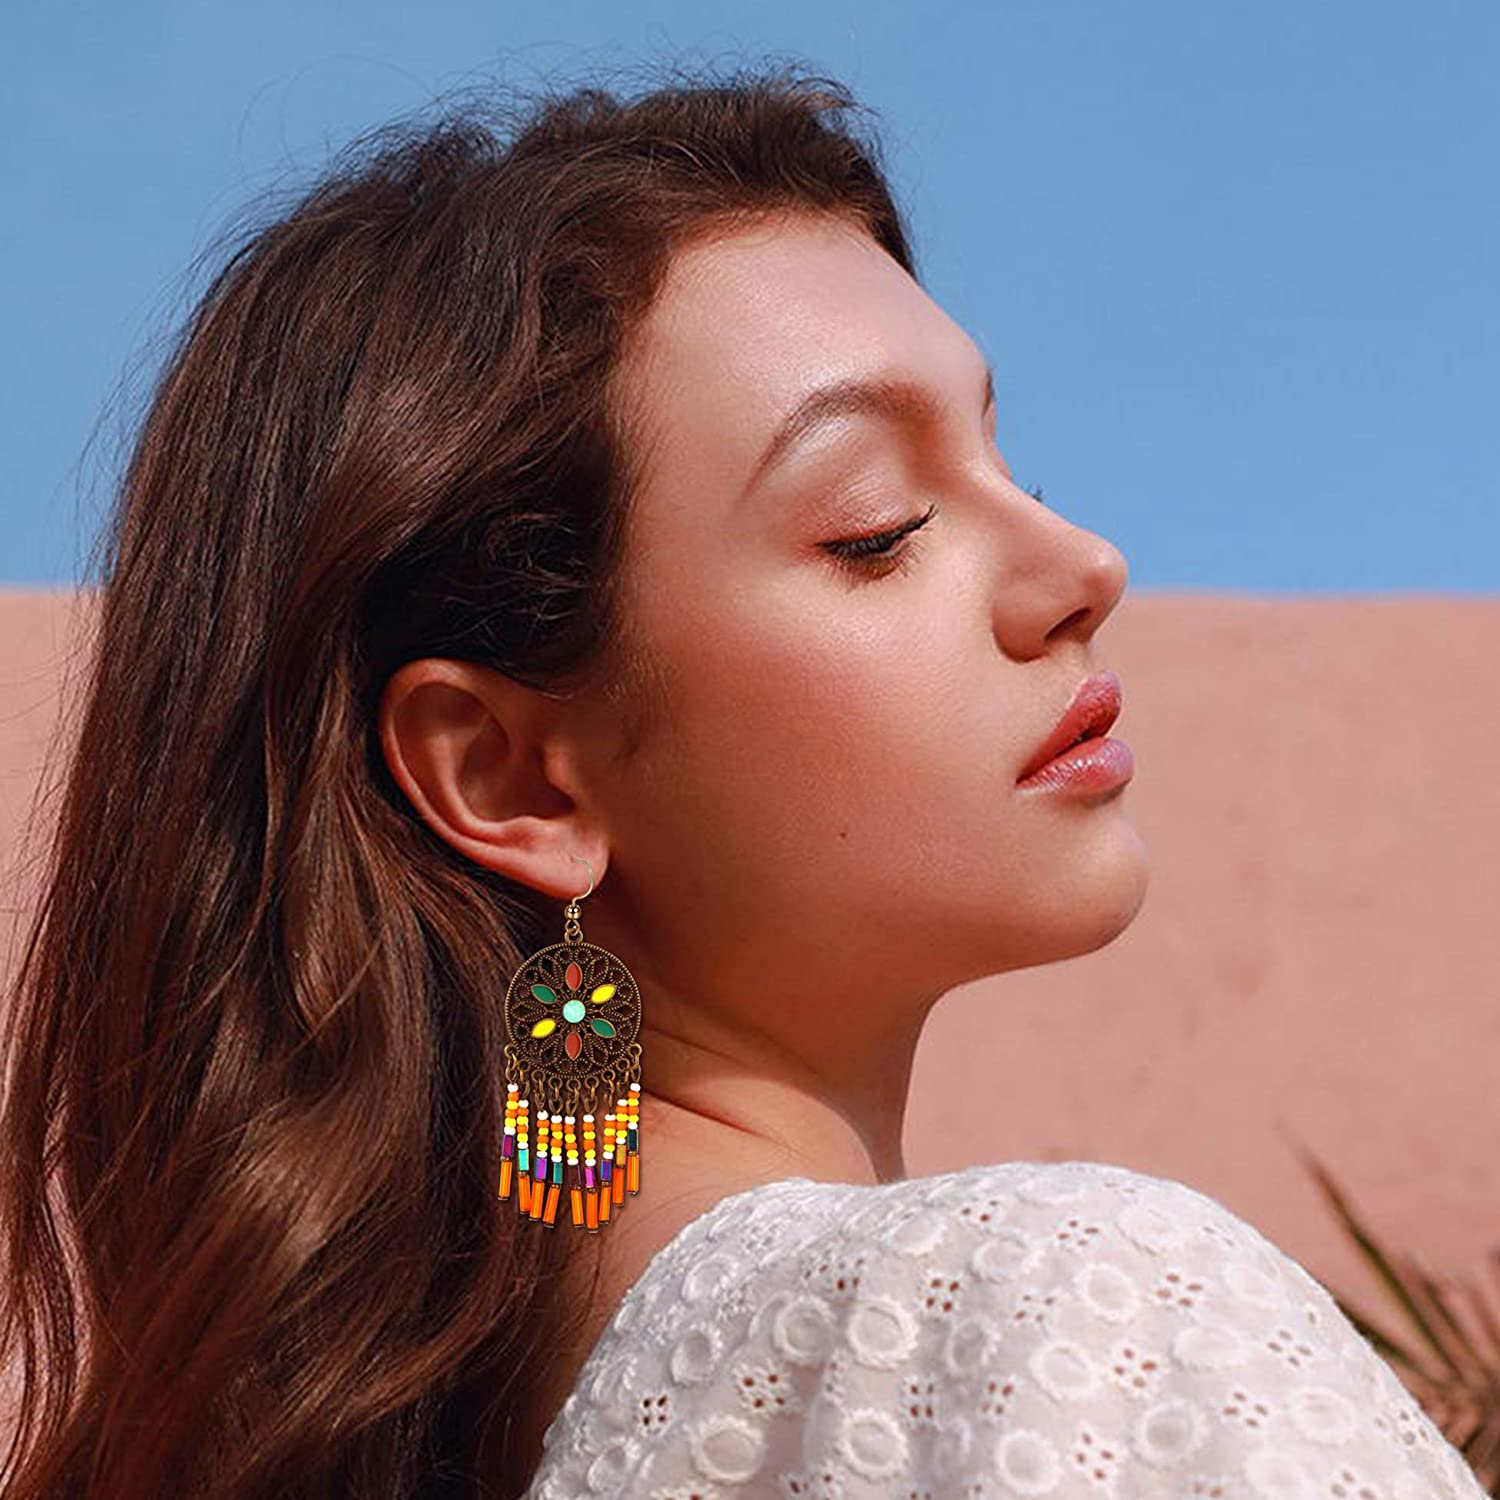 Mother\u2019s Day gift blue and amber dangle drop earrings multicolor Czech glass colorful earrings small minimalist everyday earrings